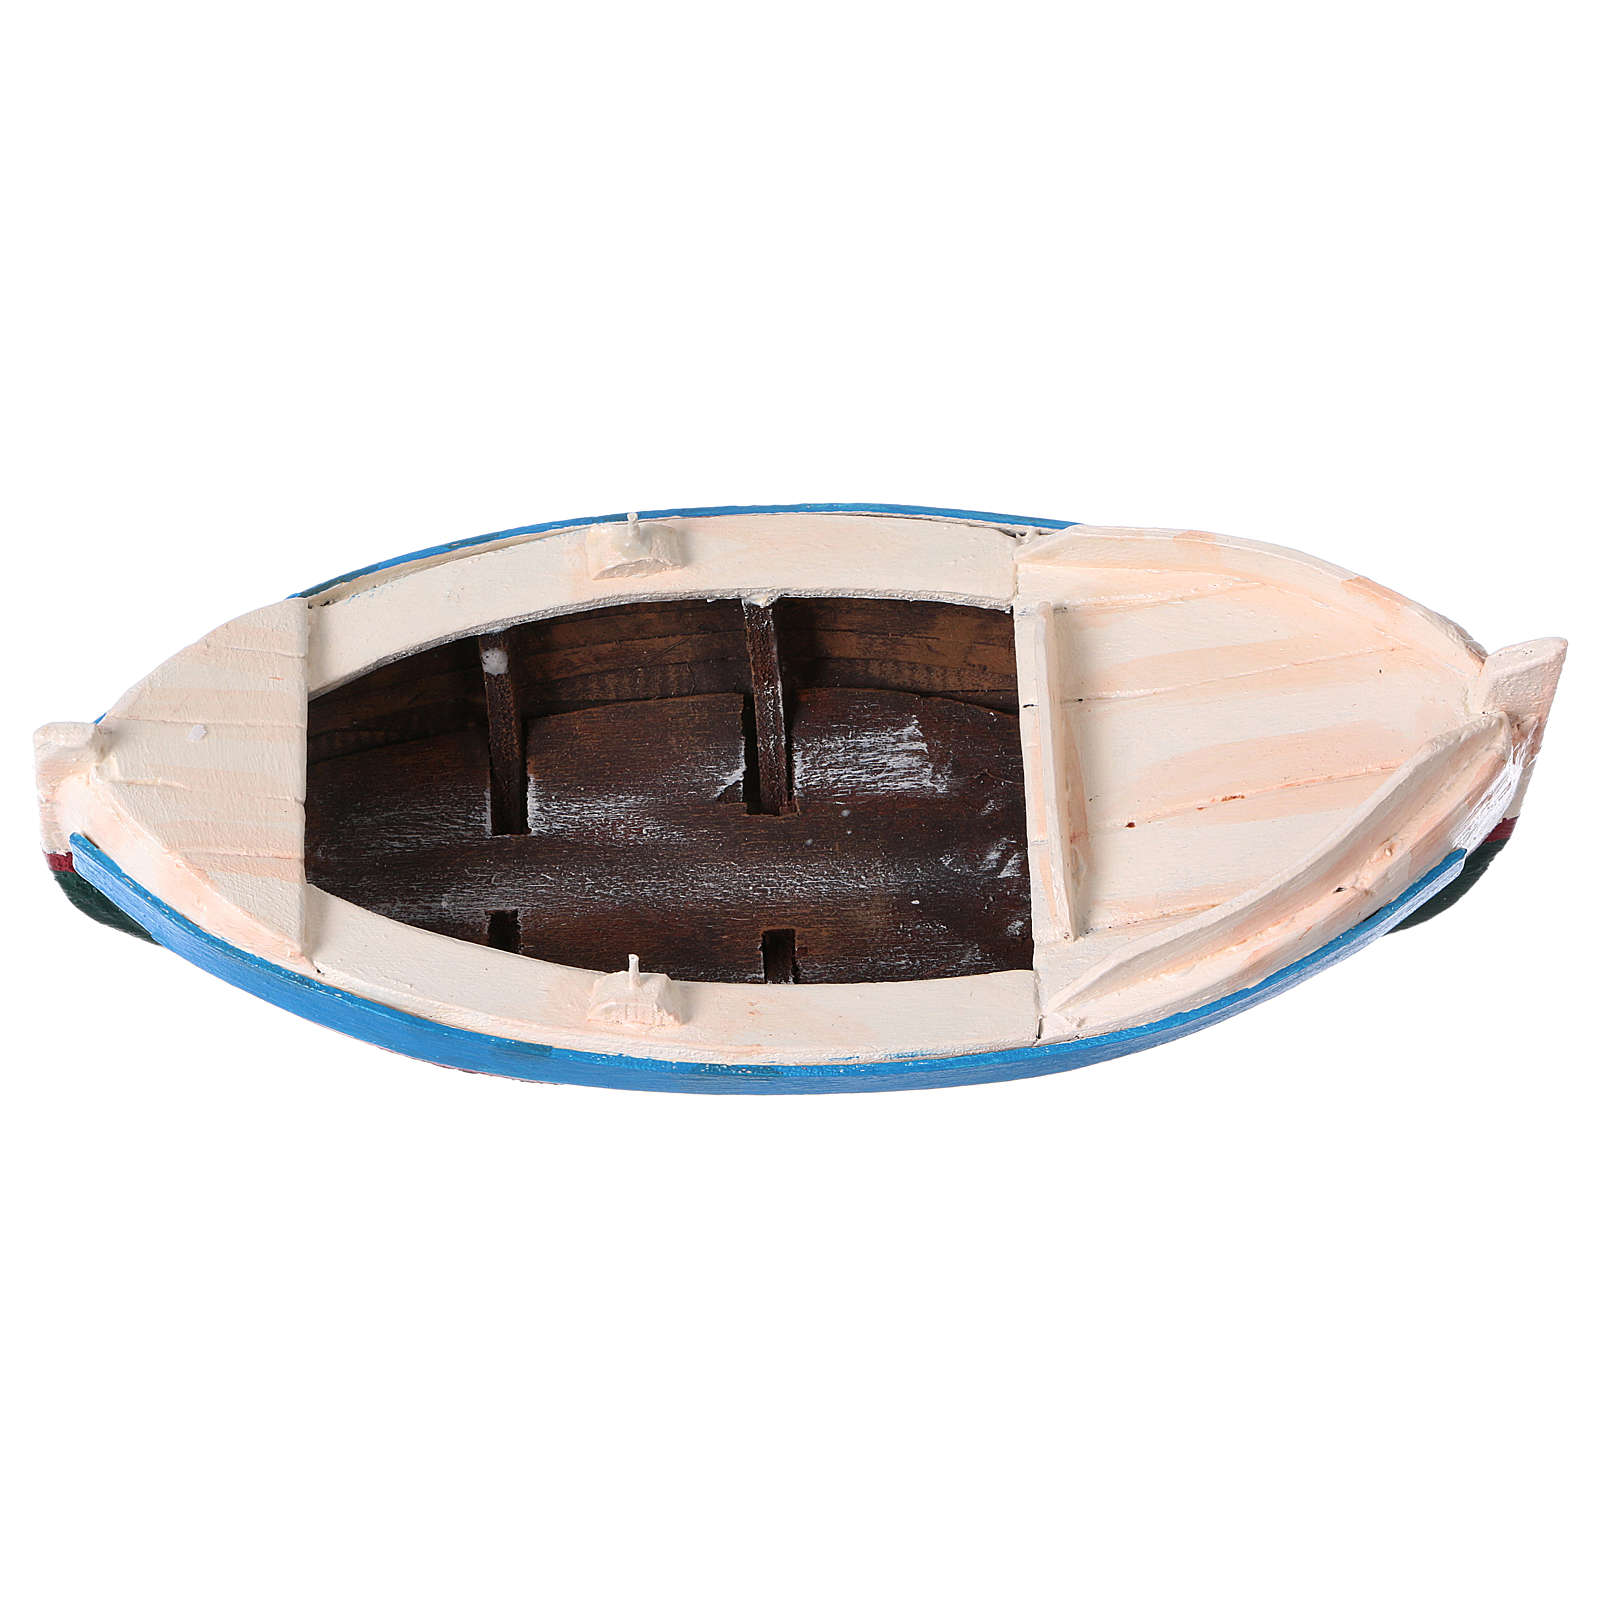 White and blue boat for Nativity Scene 10 cm 4